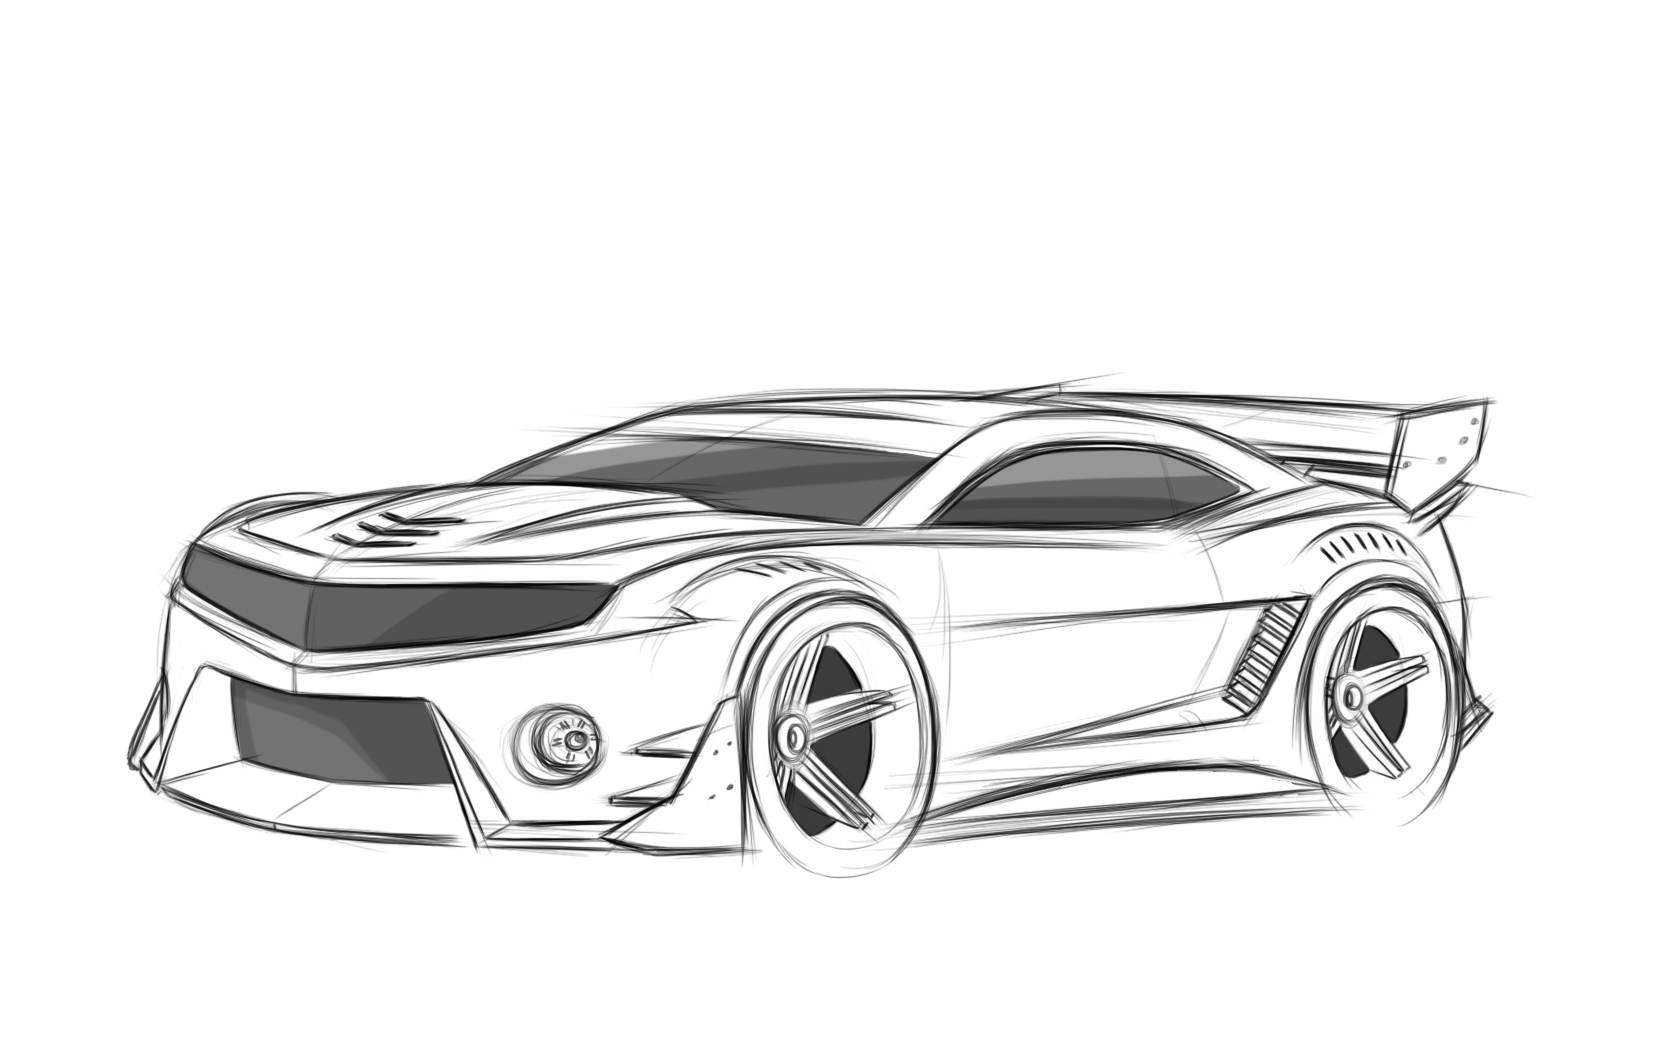 camaro outline drawing